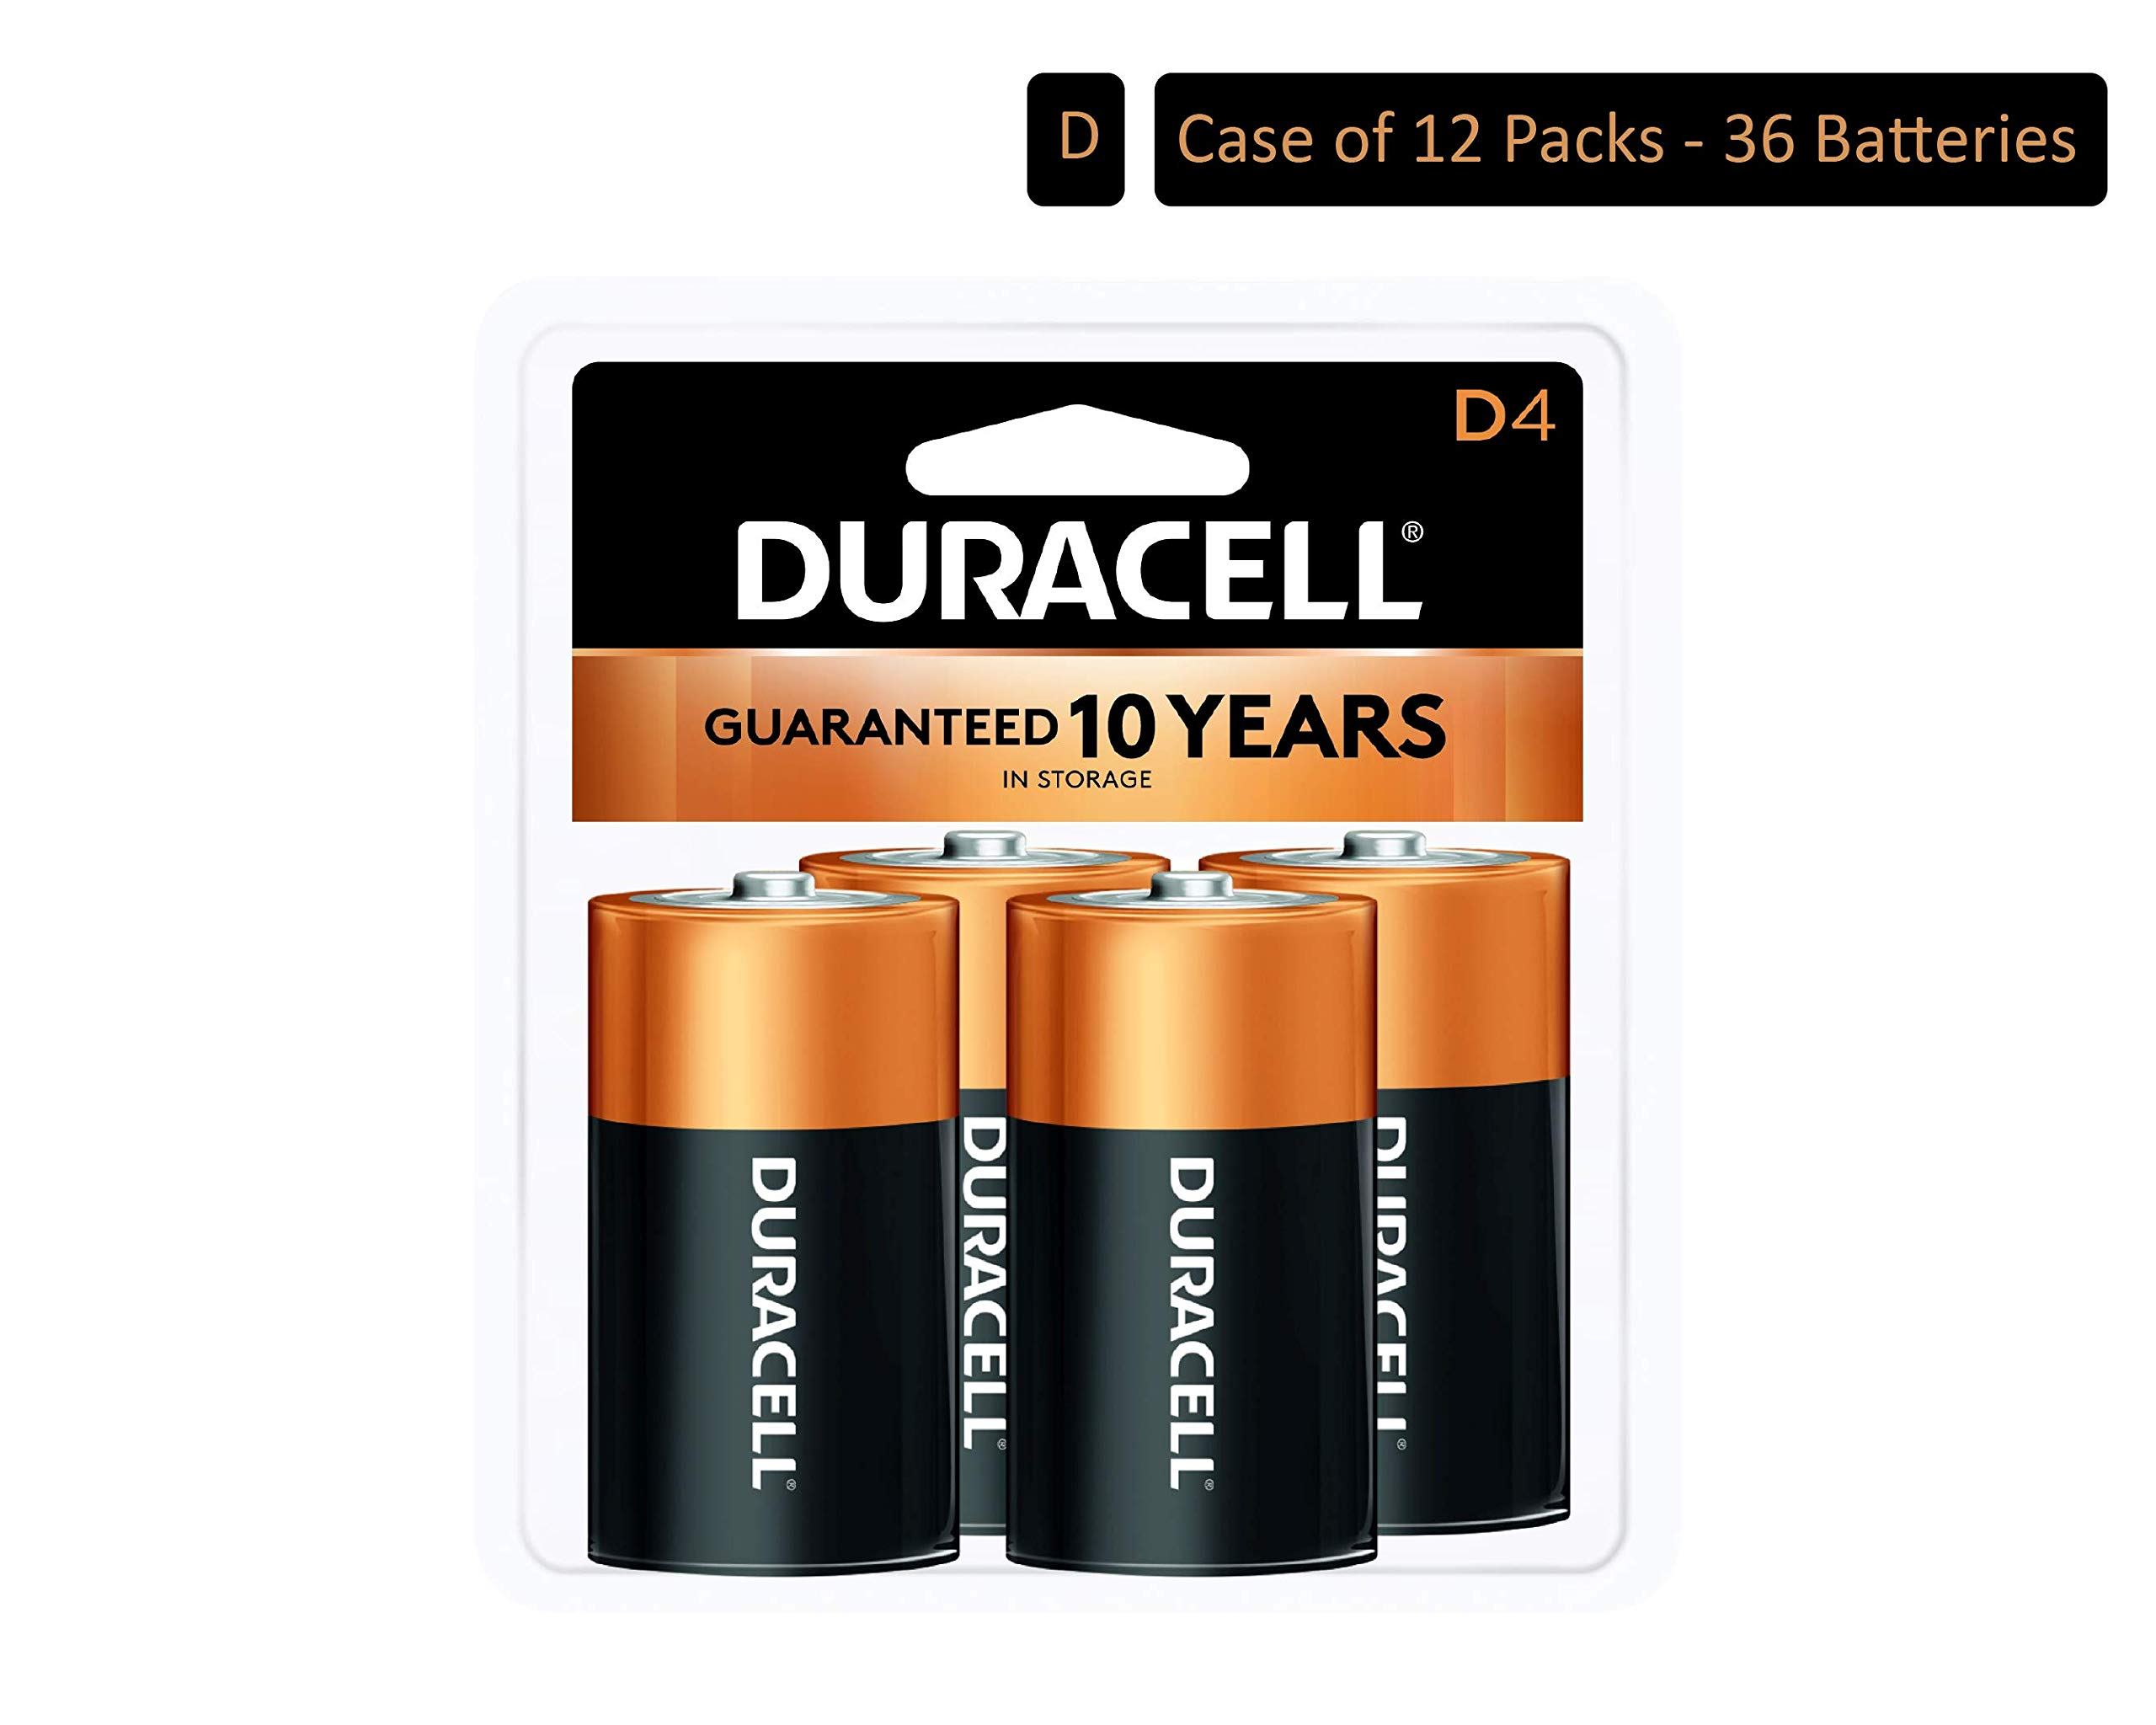 Duracell - CopperTop D Alkaline Batteries with recloseable package - long lasting, all-purpose D battery for household and business - 4 count (Pack of 12) by Duracell